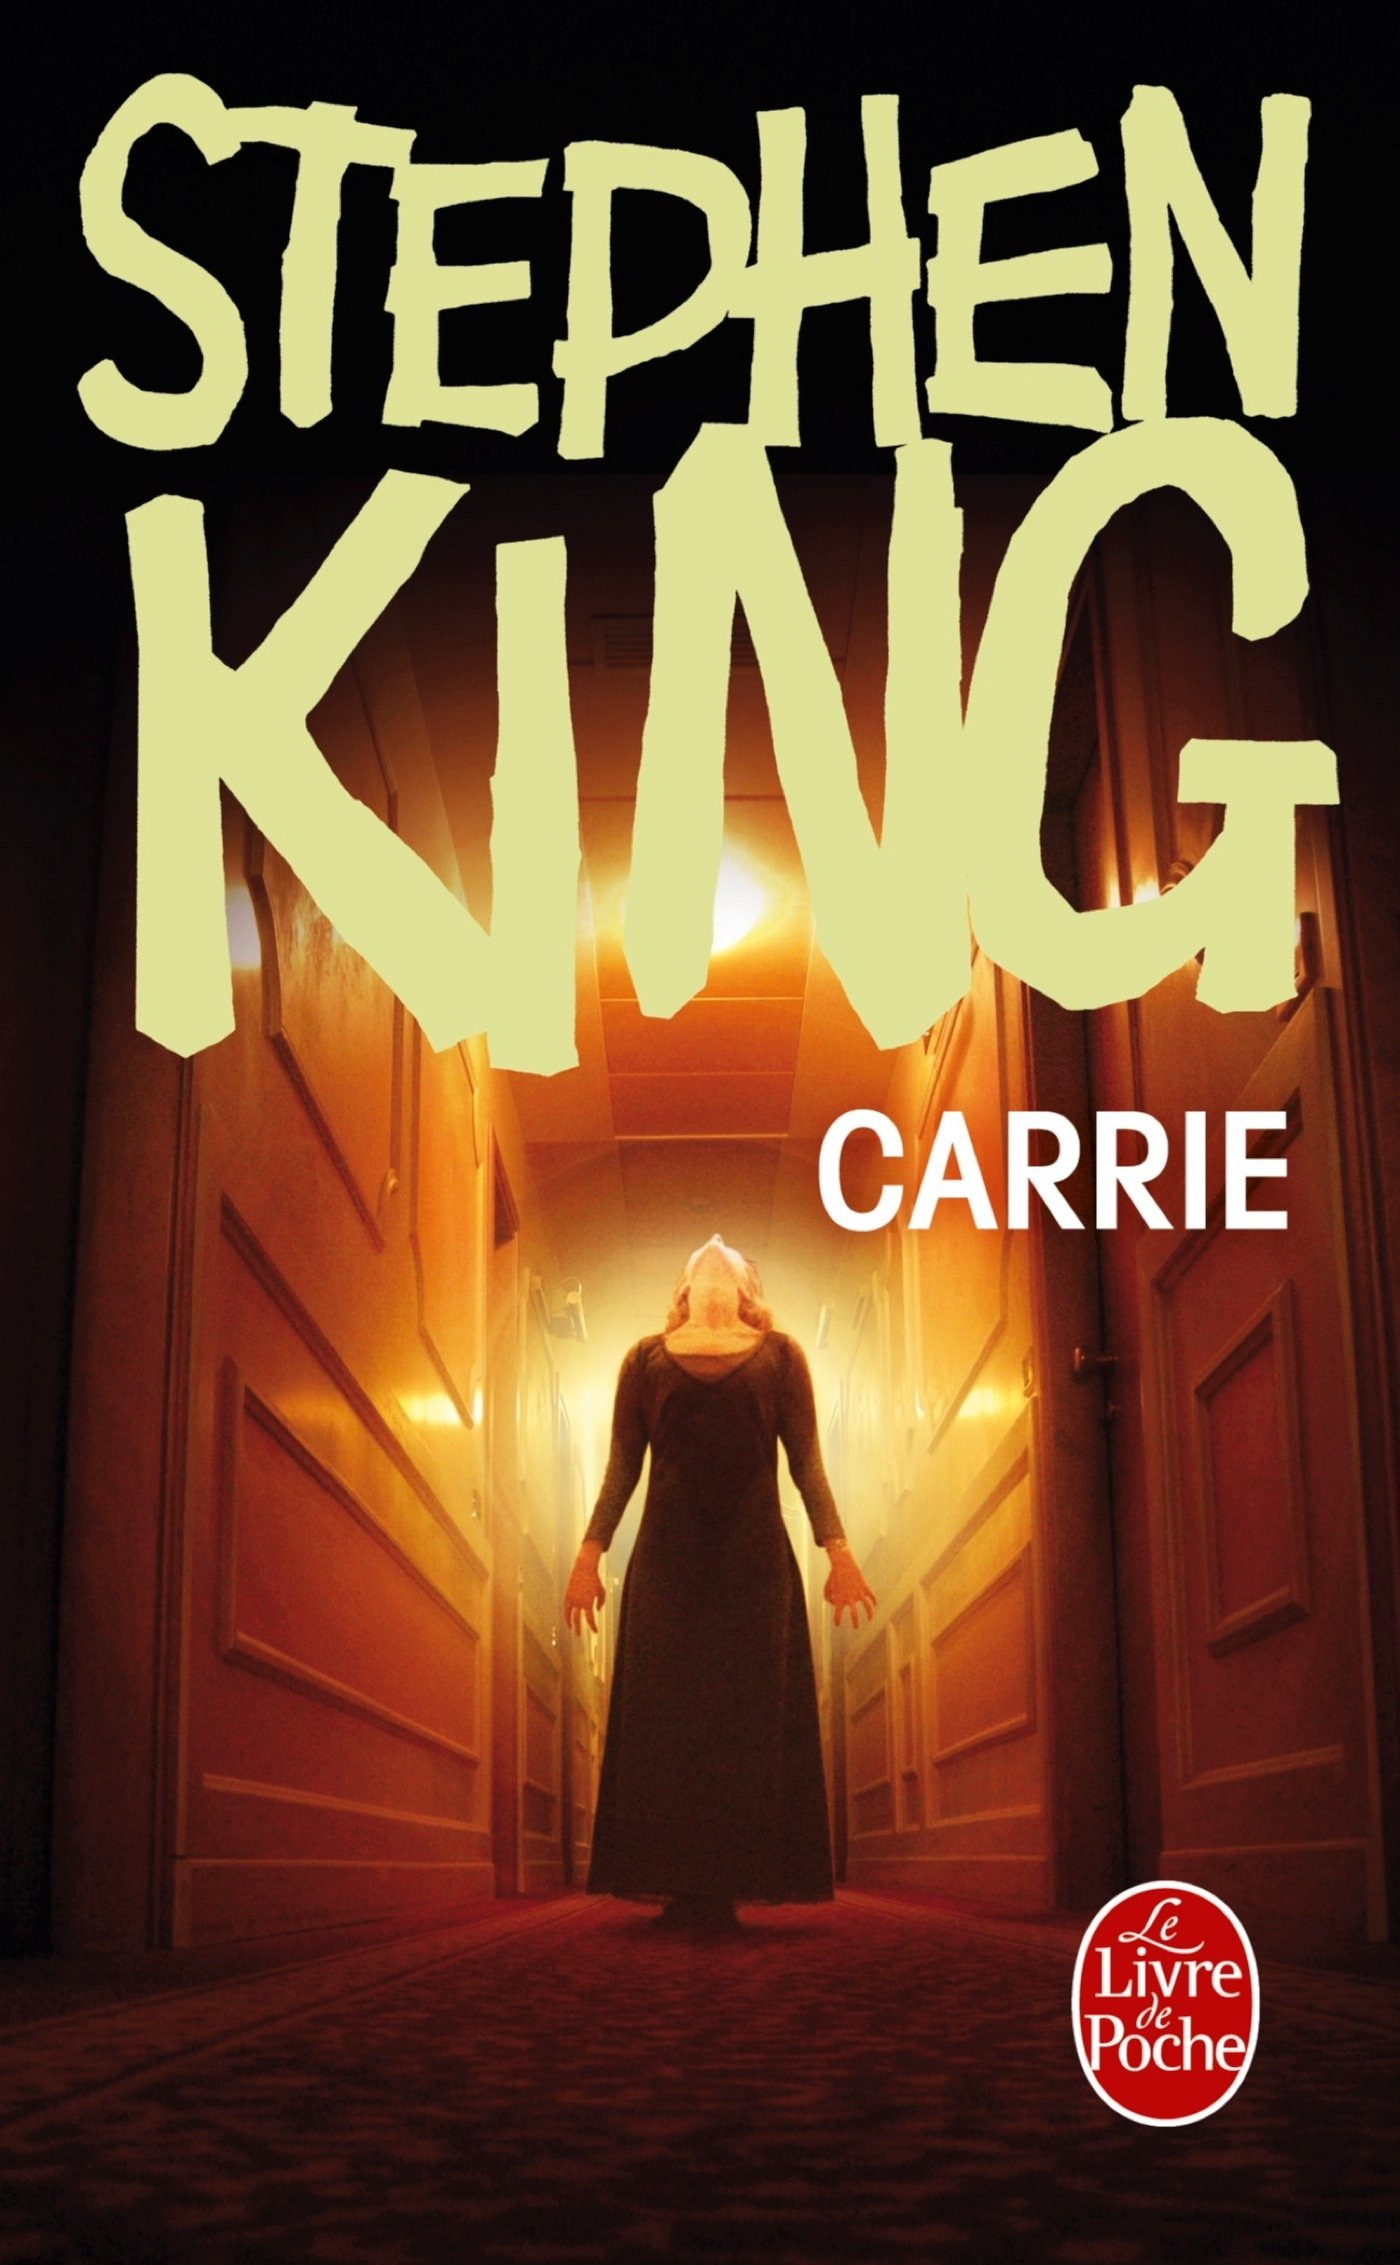 carrie--lelivredepoche--stephenking